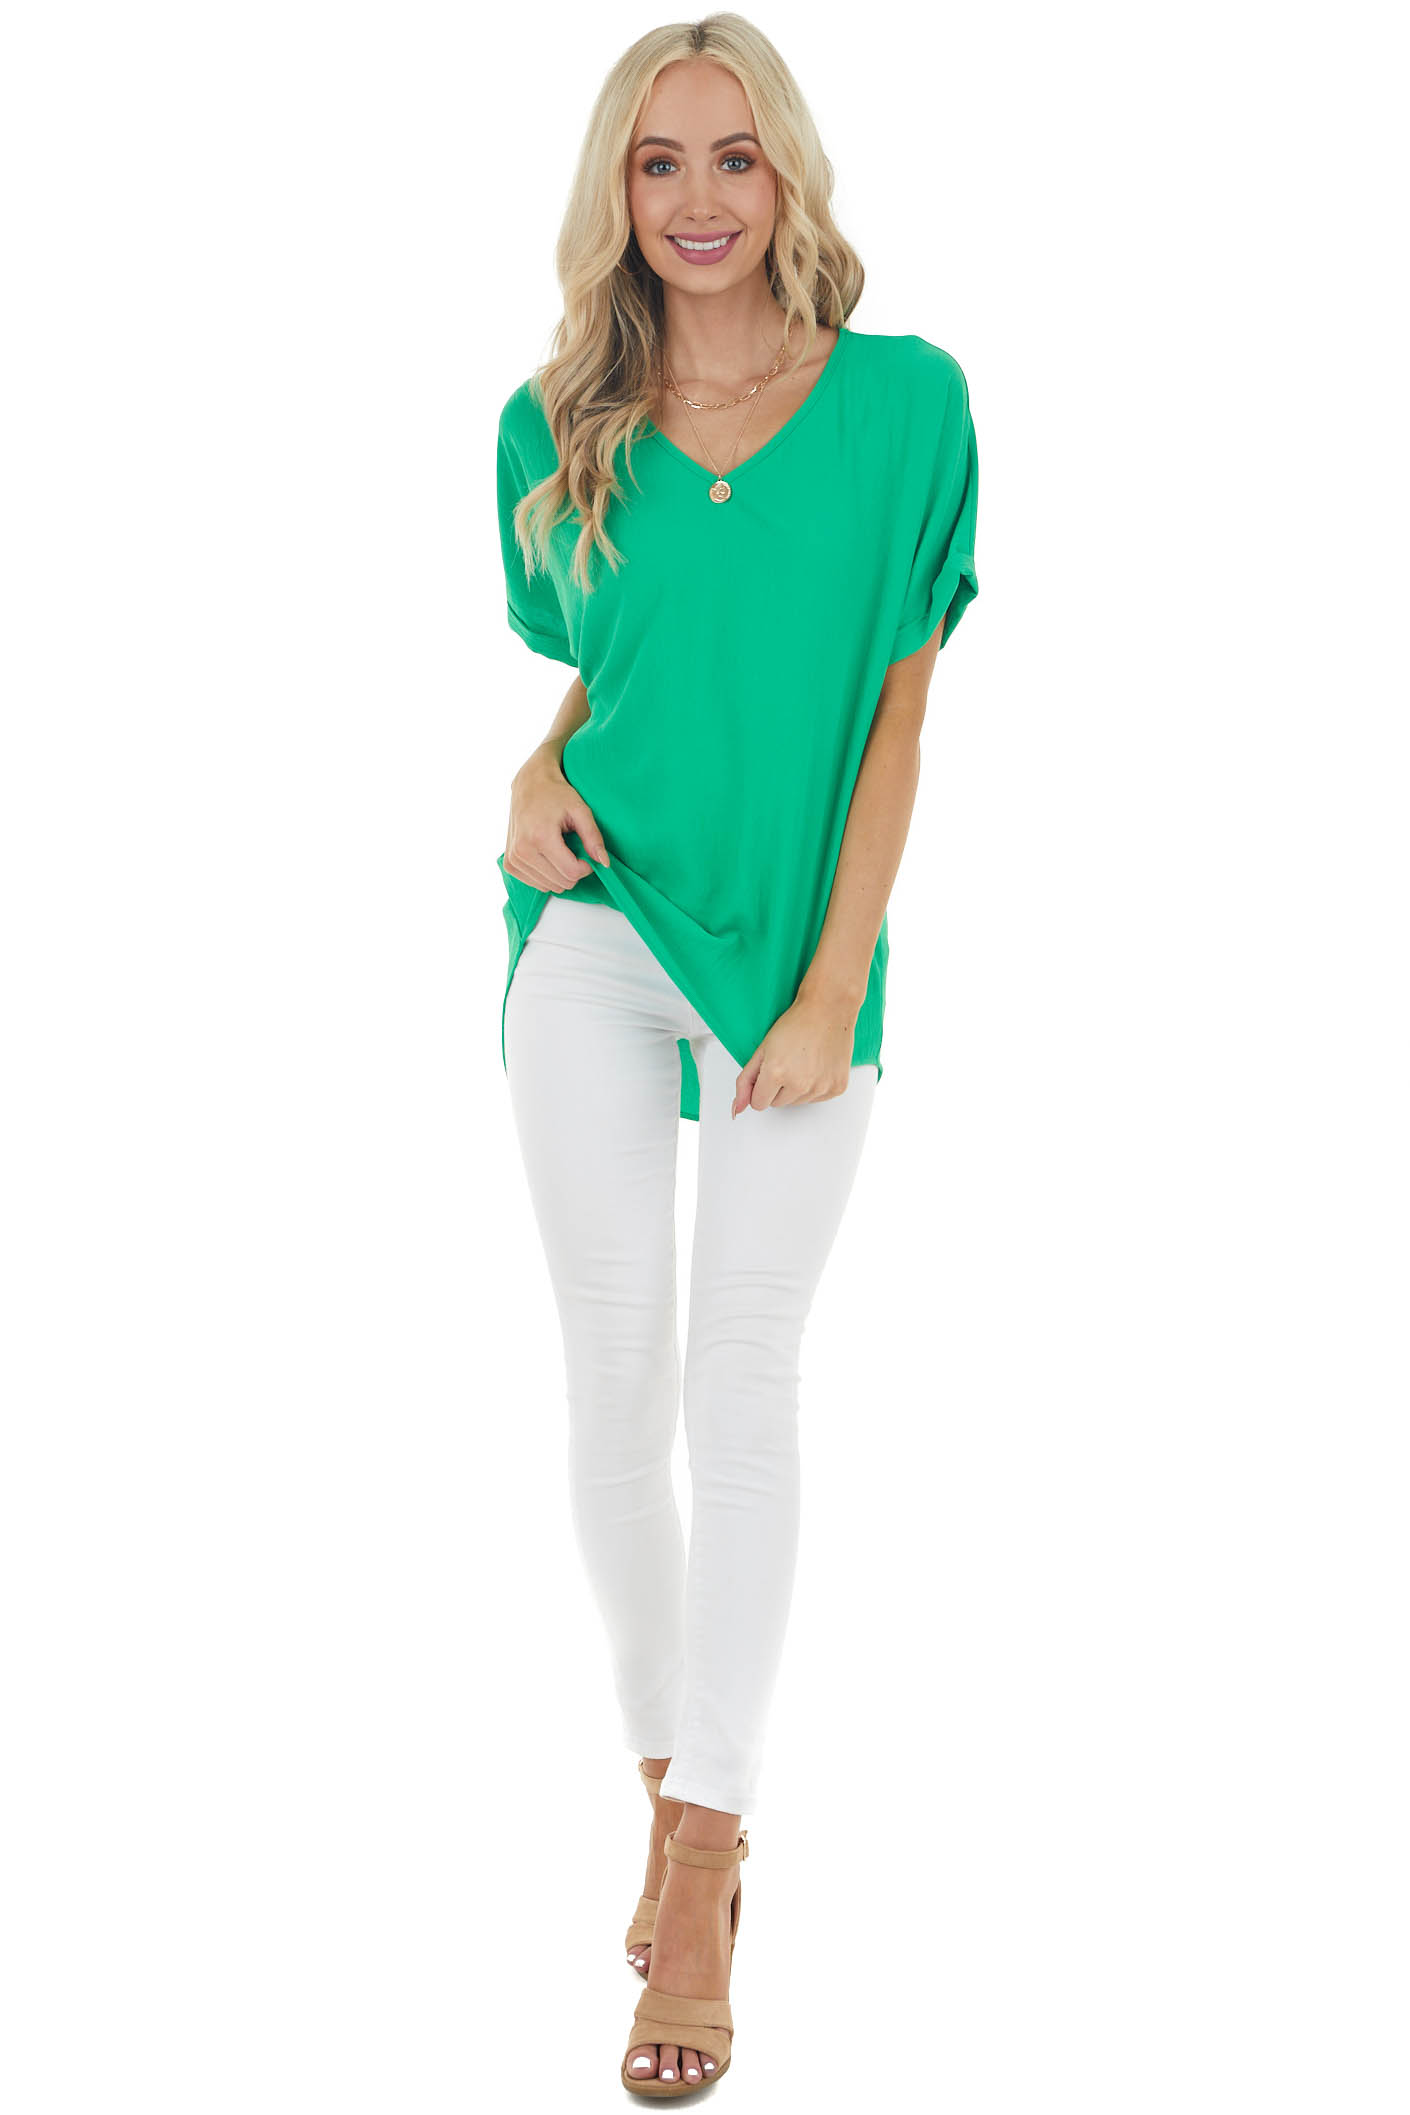 Jade Green Short Sleeve V Neck Woven Top with High Low Hem